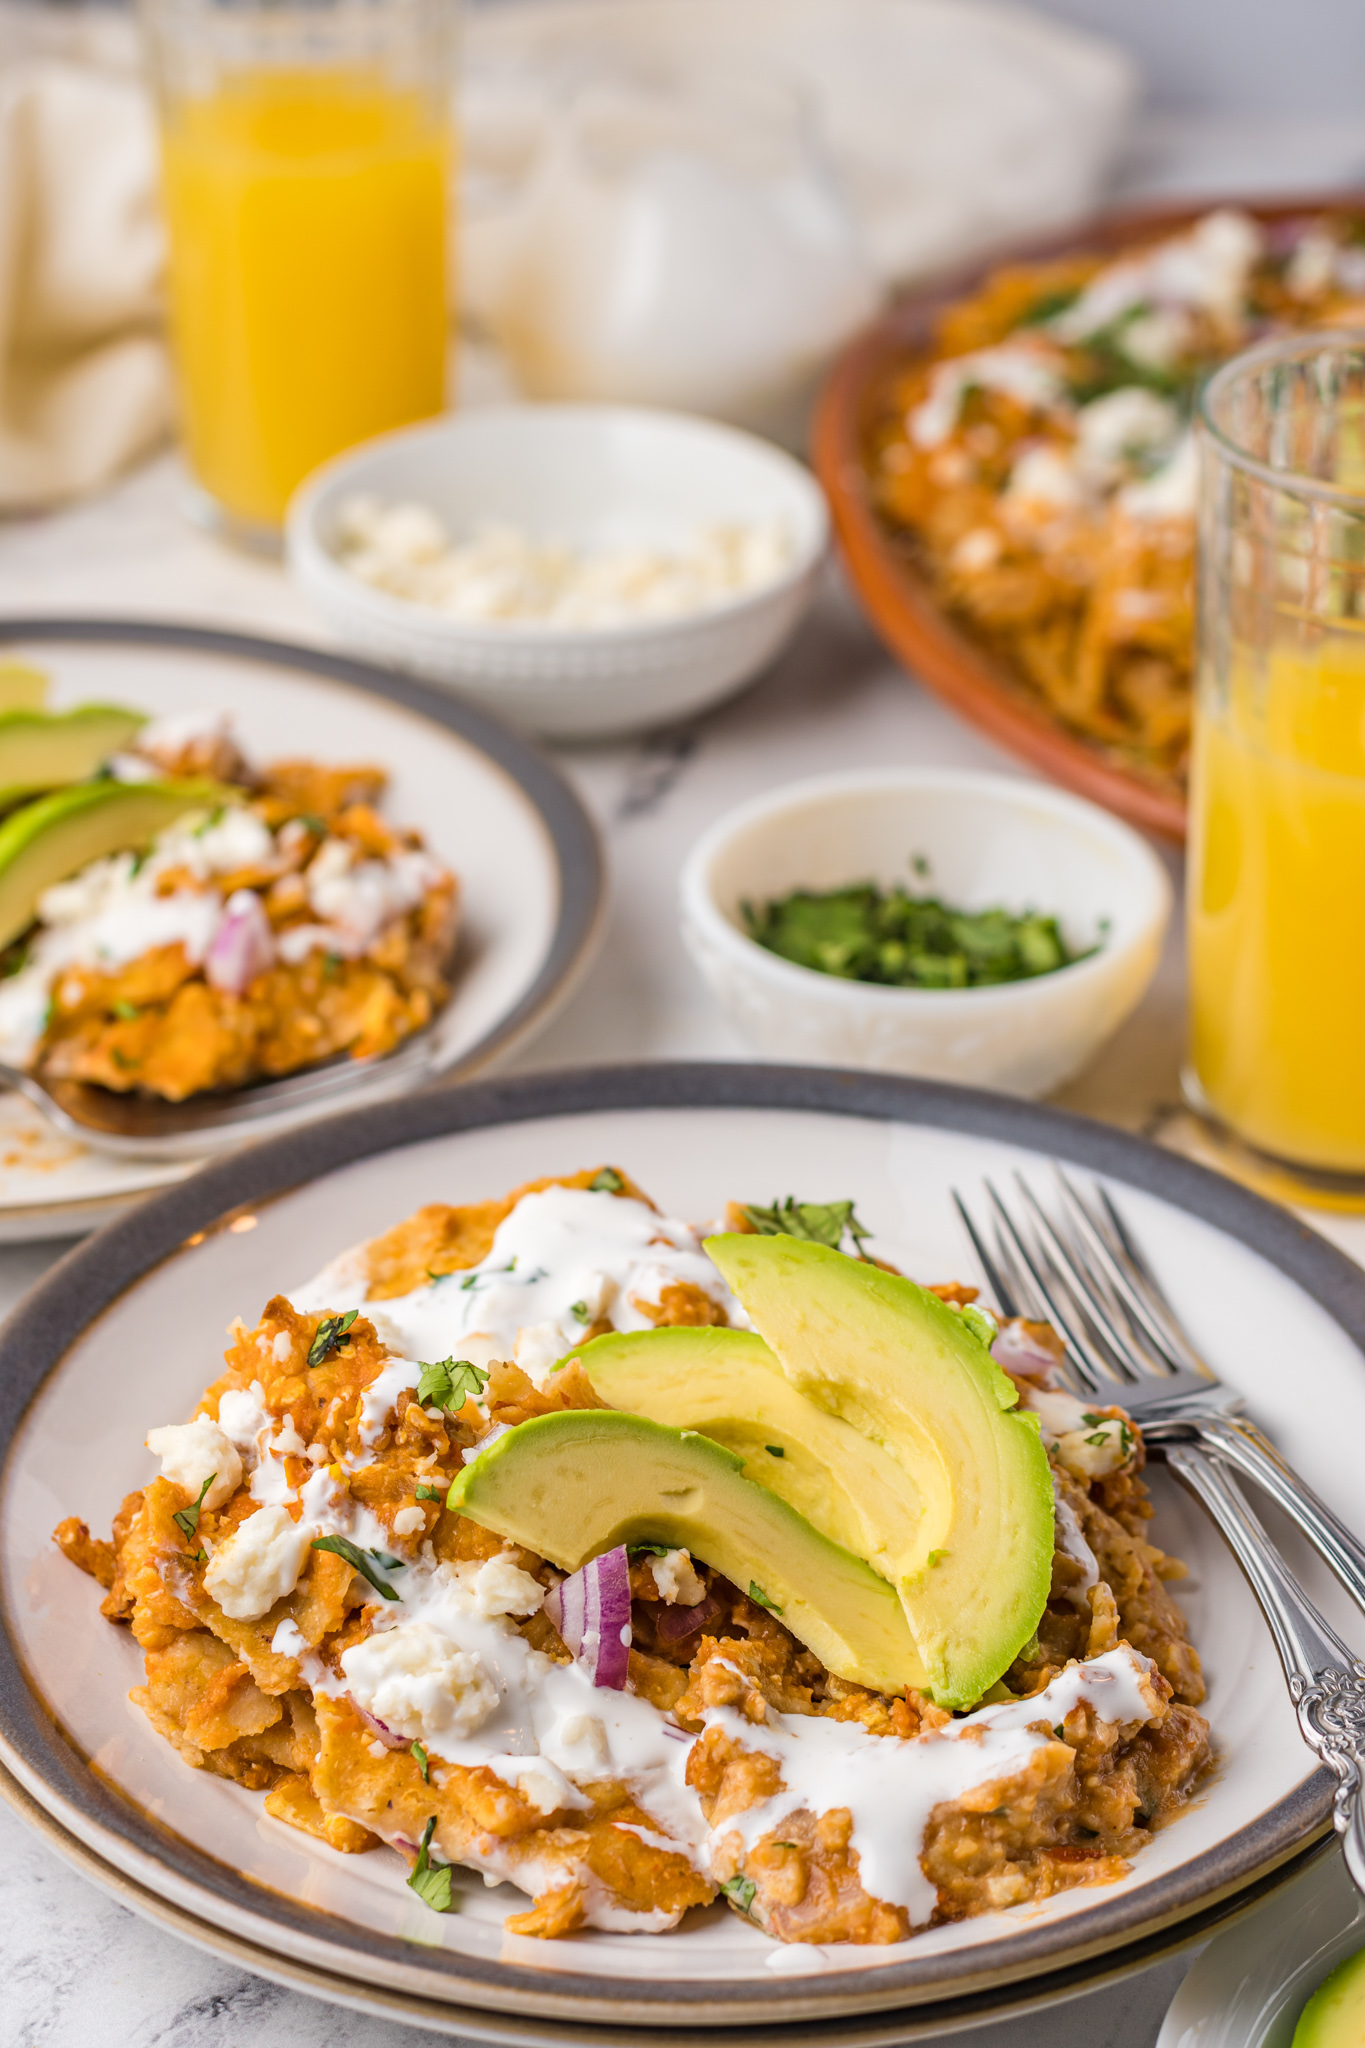 Chilaquiles Rojos Recipe on a plate with fork.